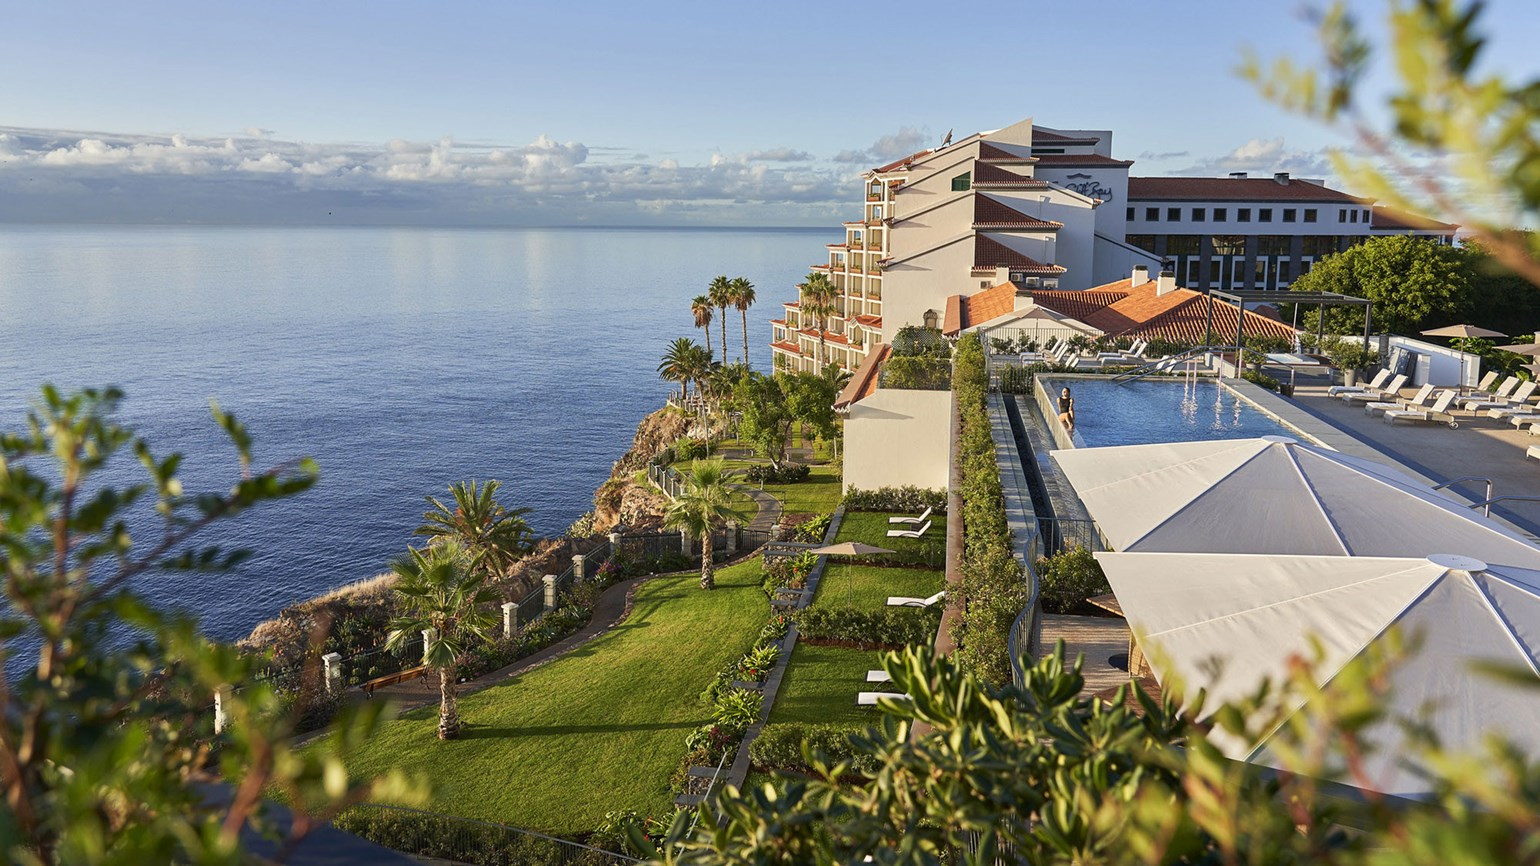 Les Suites at the Cliff Bay opens on Madeira